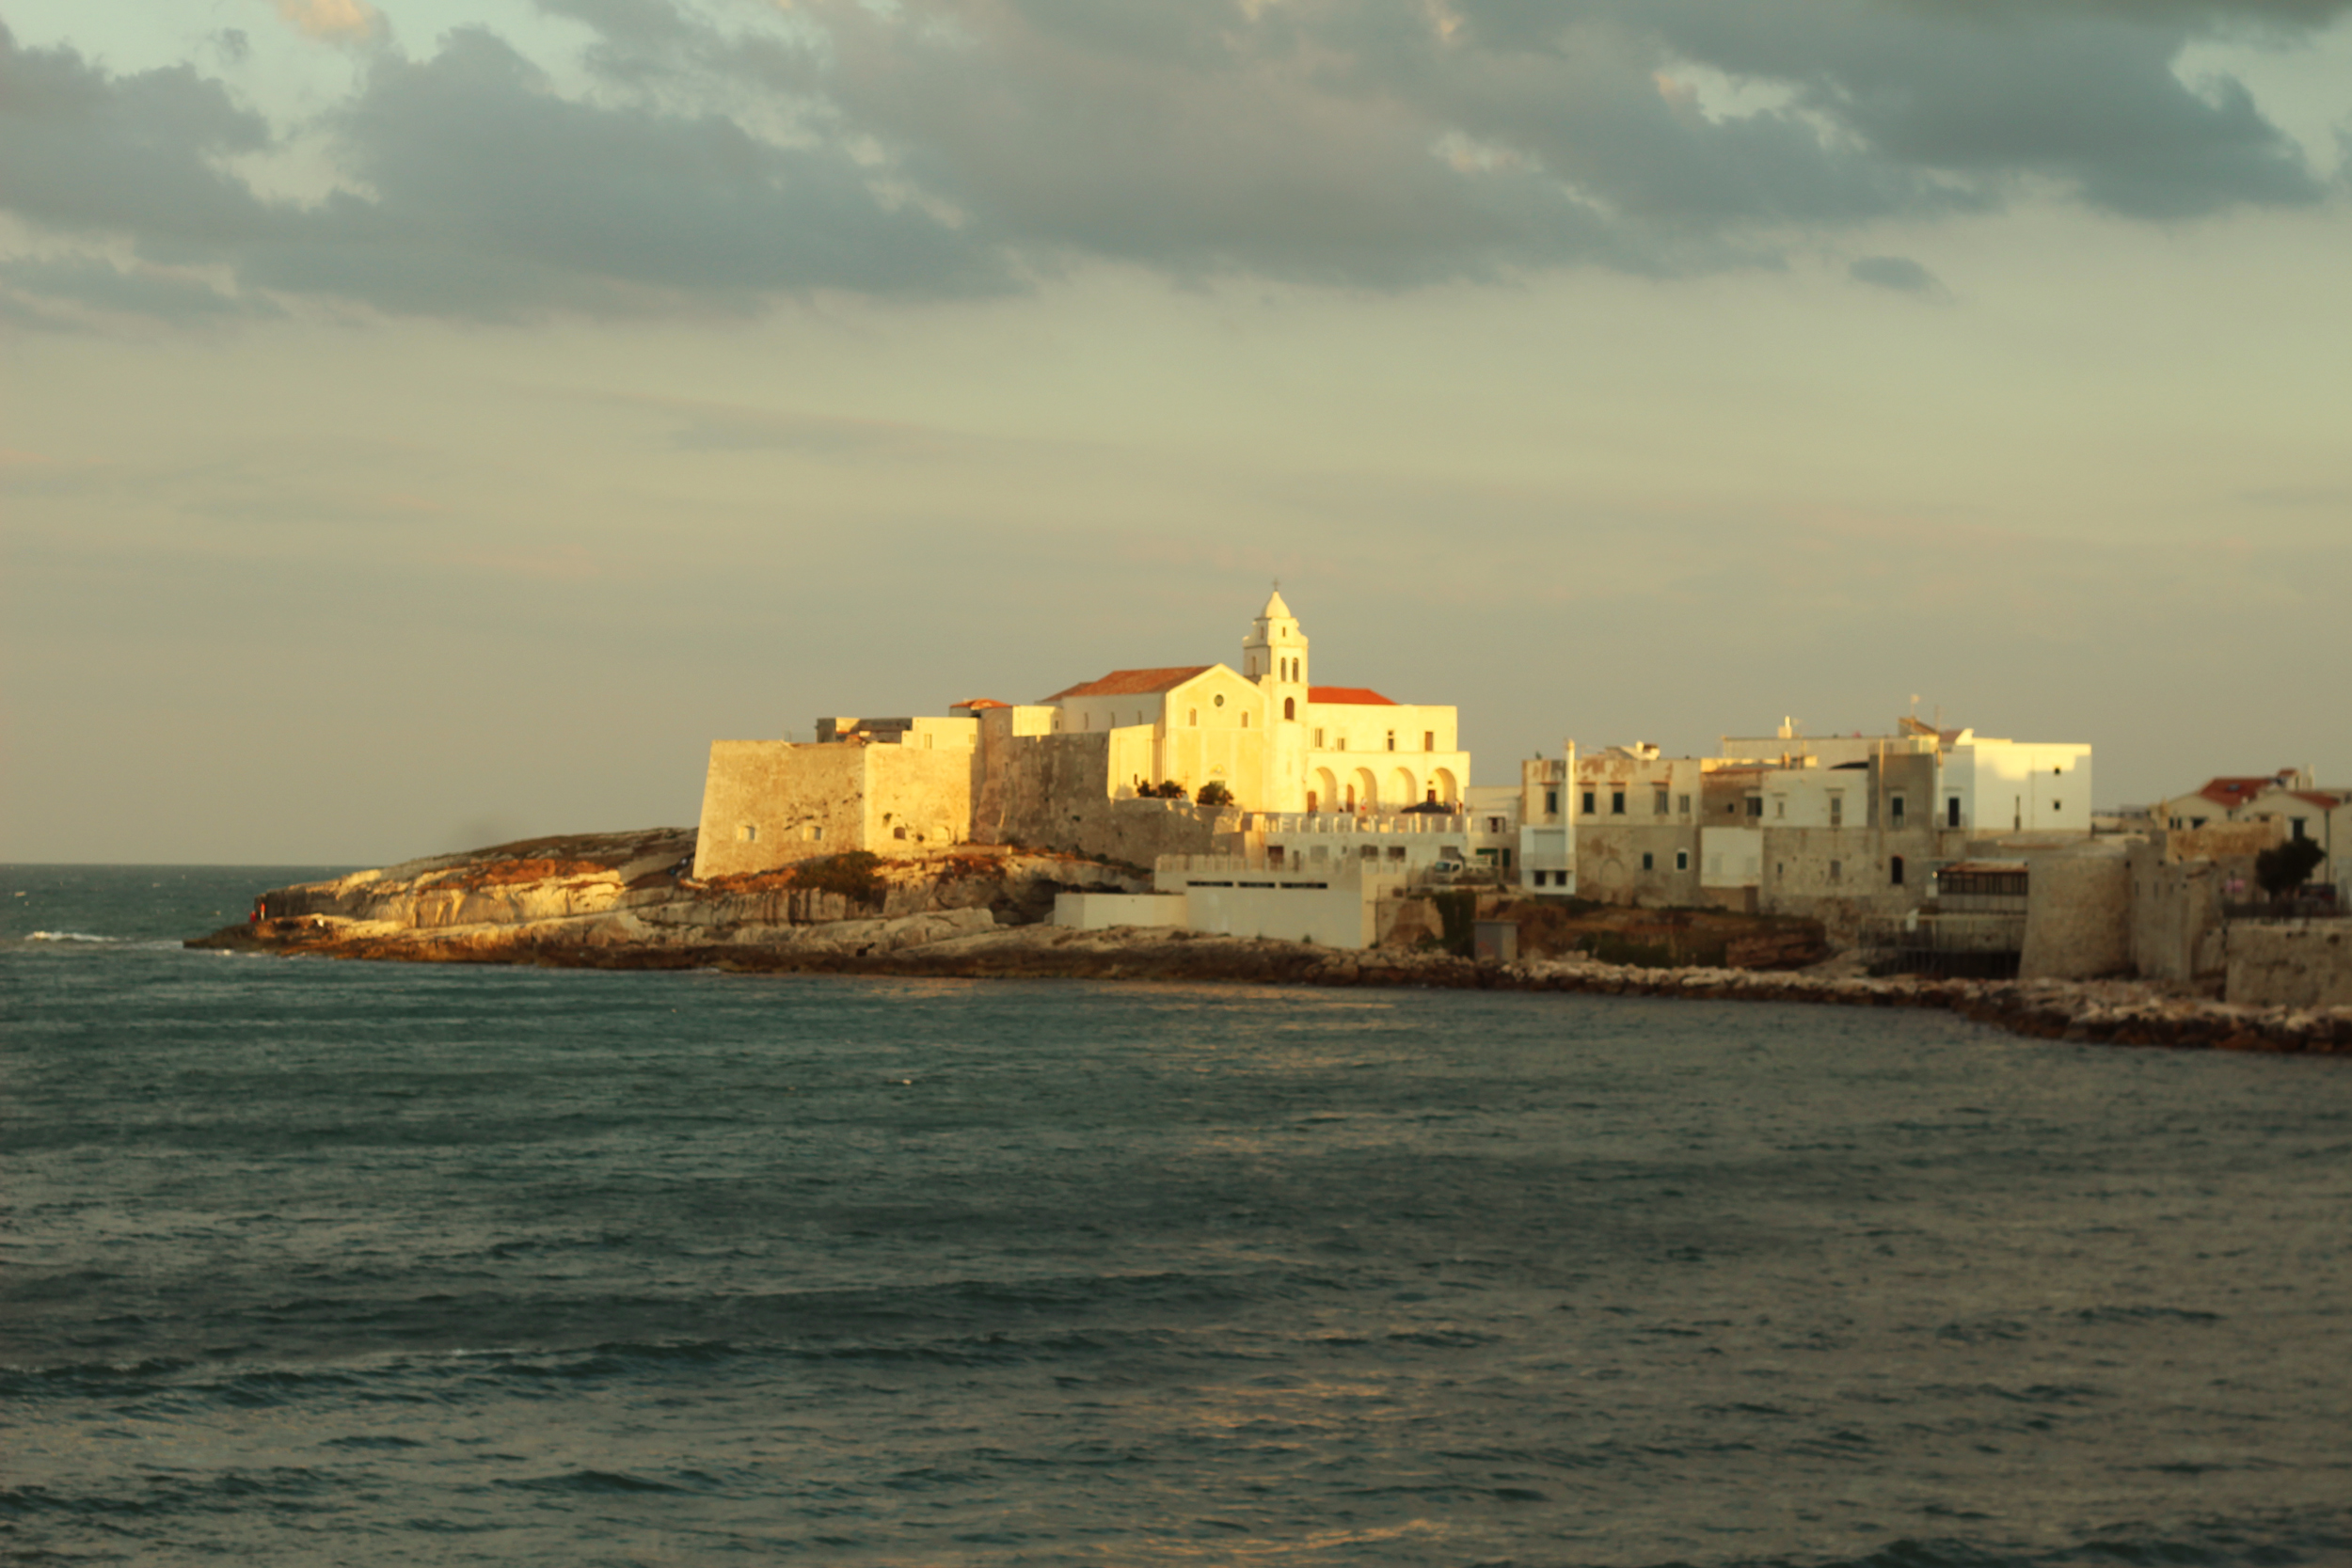 annaporter-adriatic-sea-vieste-italy-vacation-city-italia-vacanza.jpg